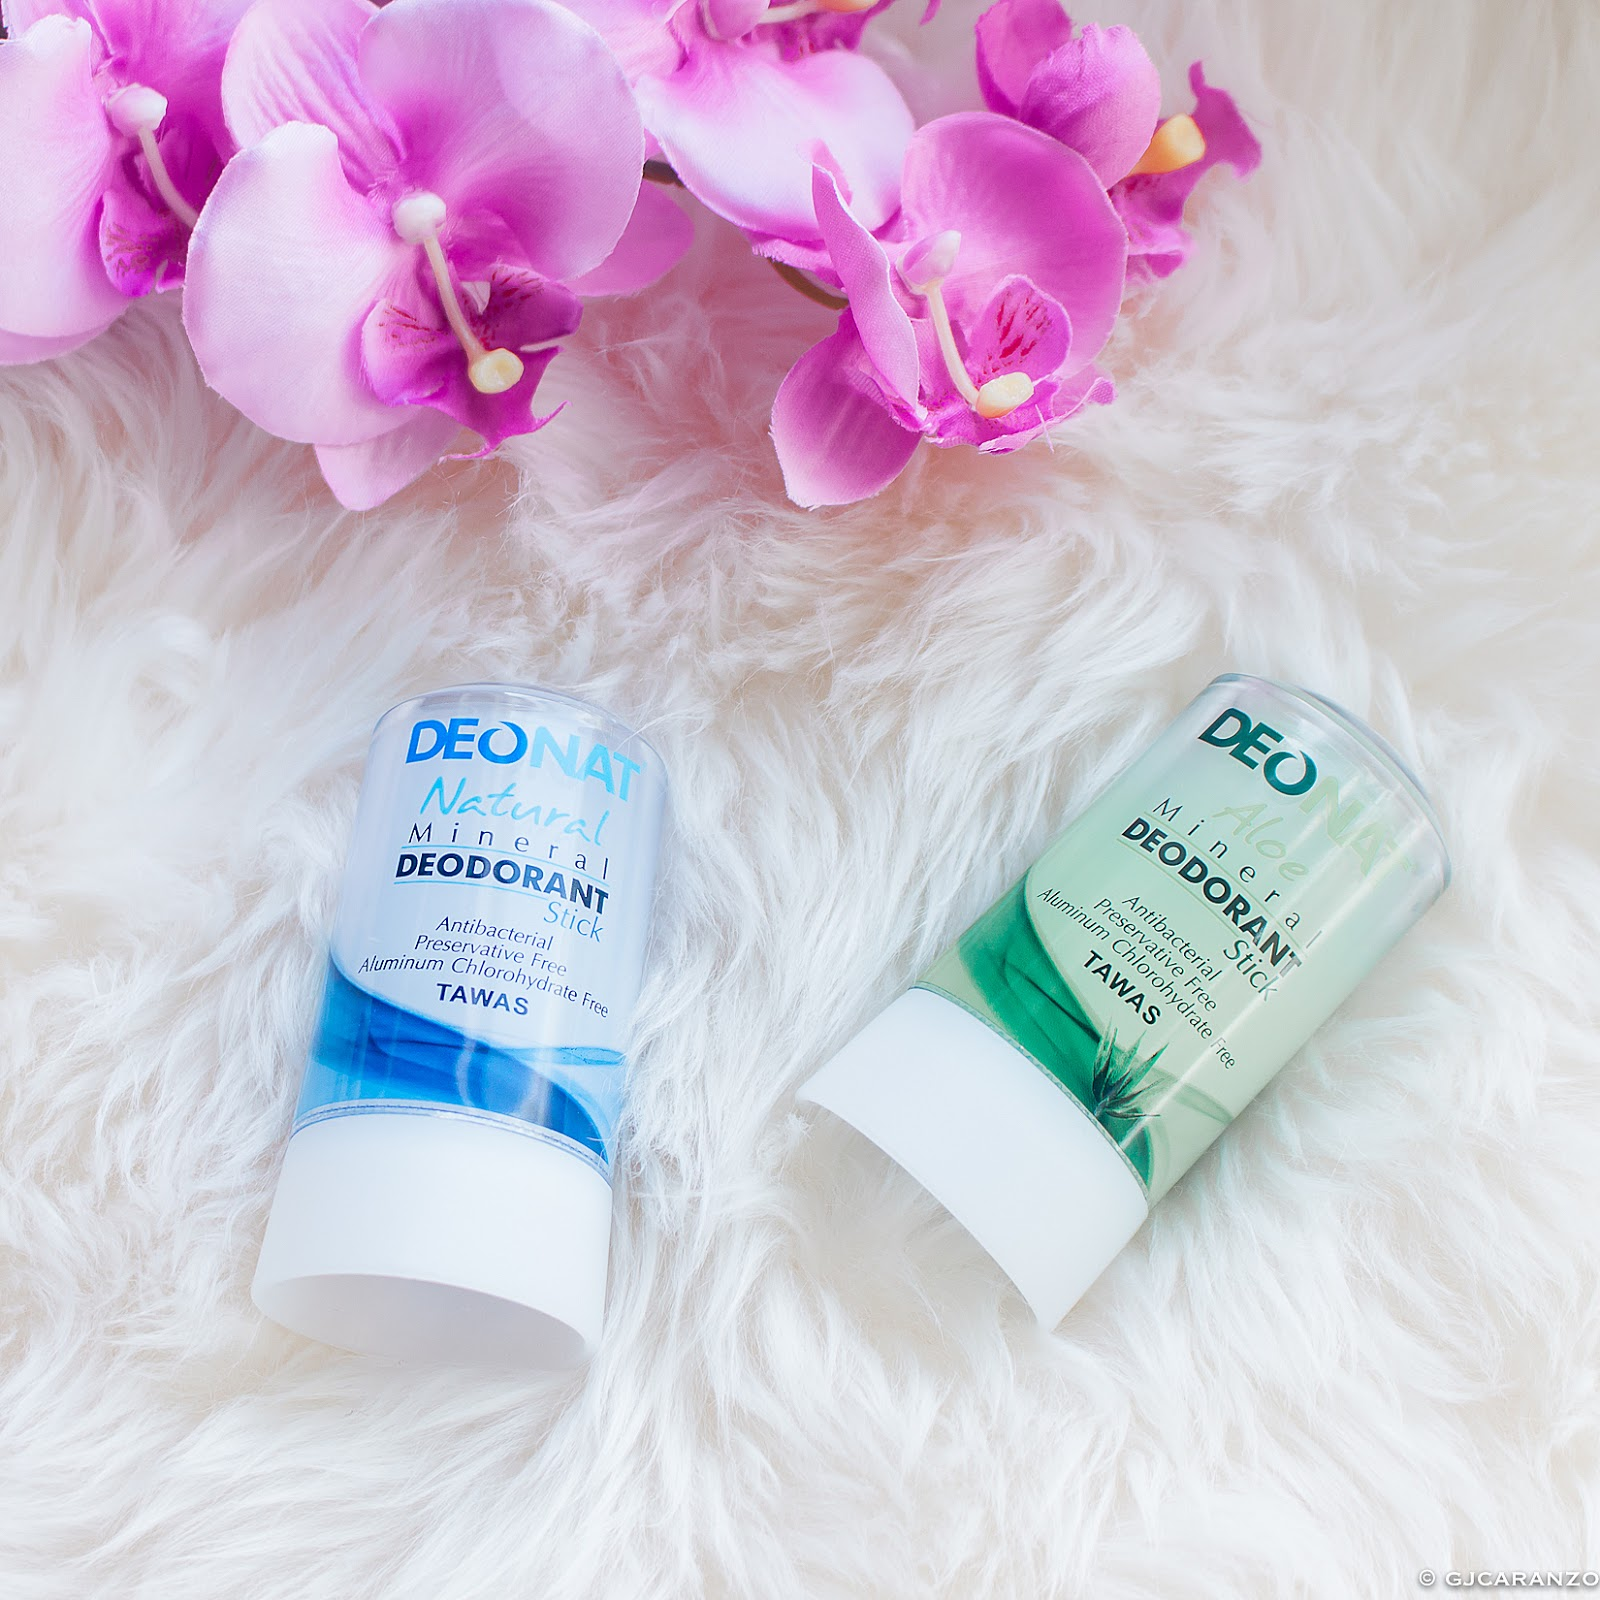 Deonat Mineral Deodorant Stick Review